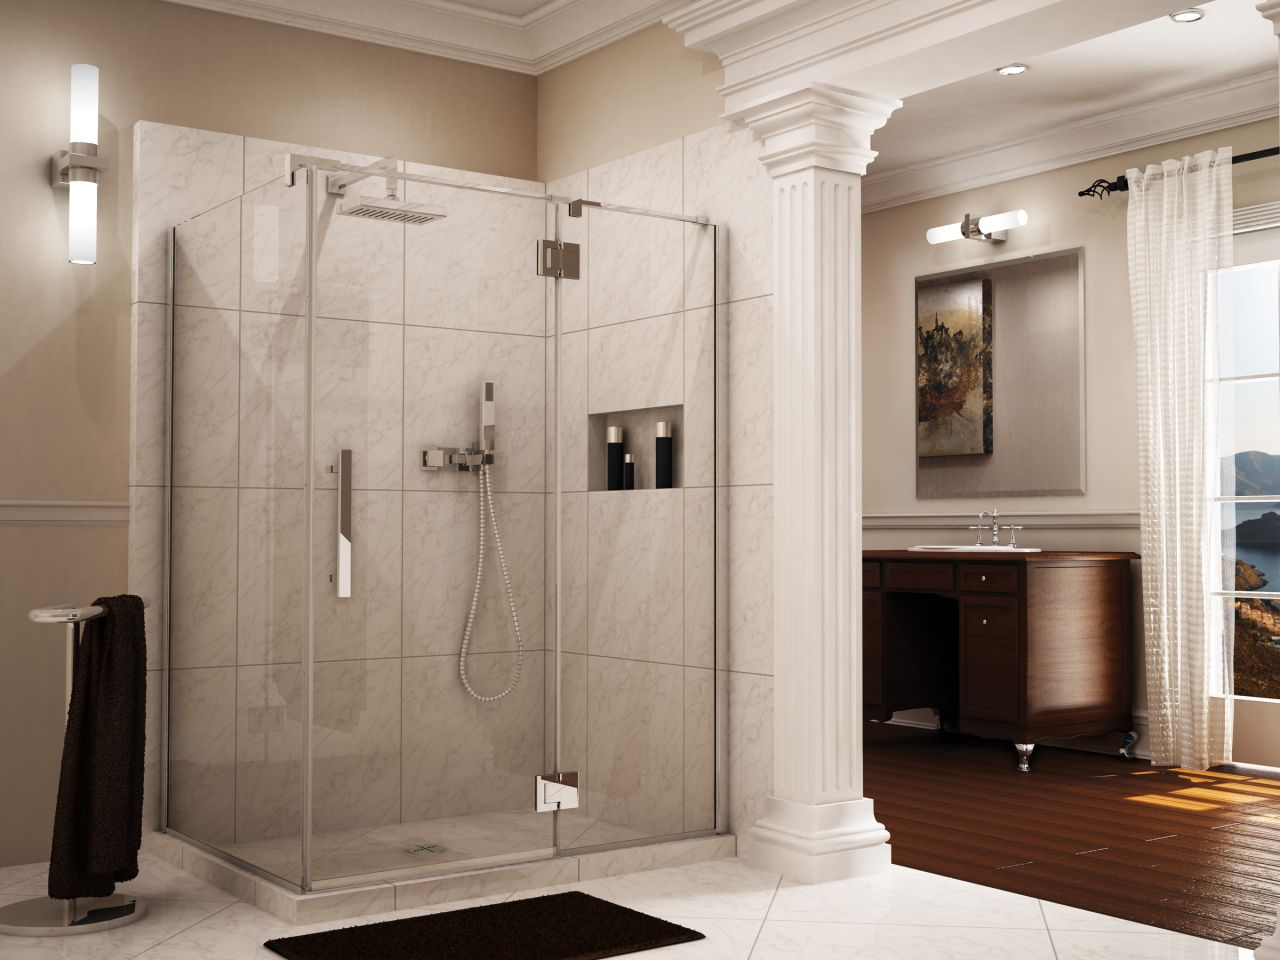 7 reasons to choose a shower door over a shower curtain for 1 2 frameless glass shower door